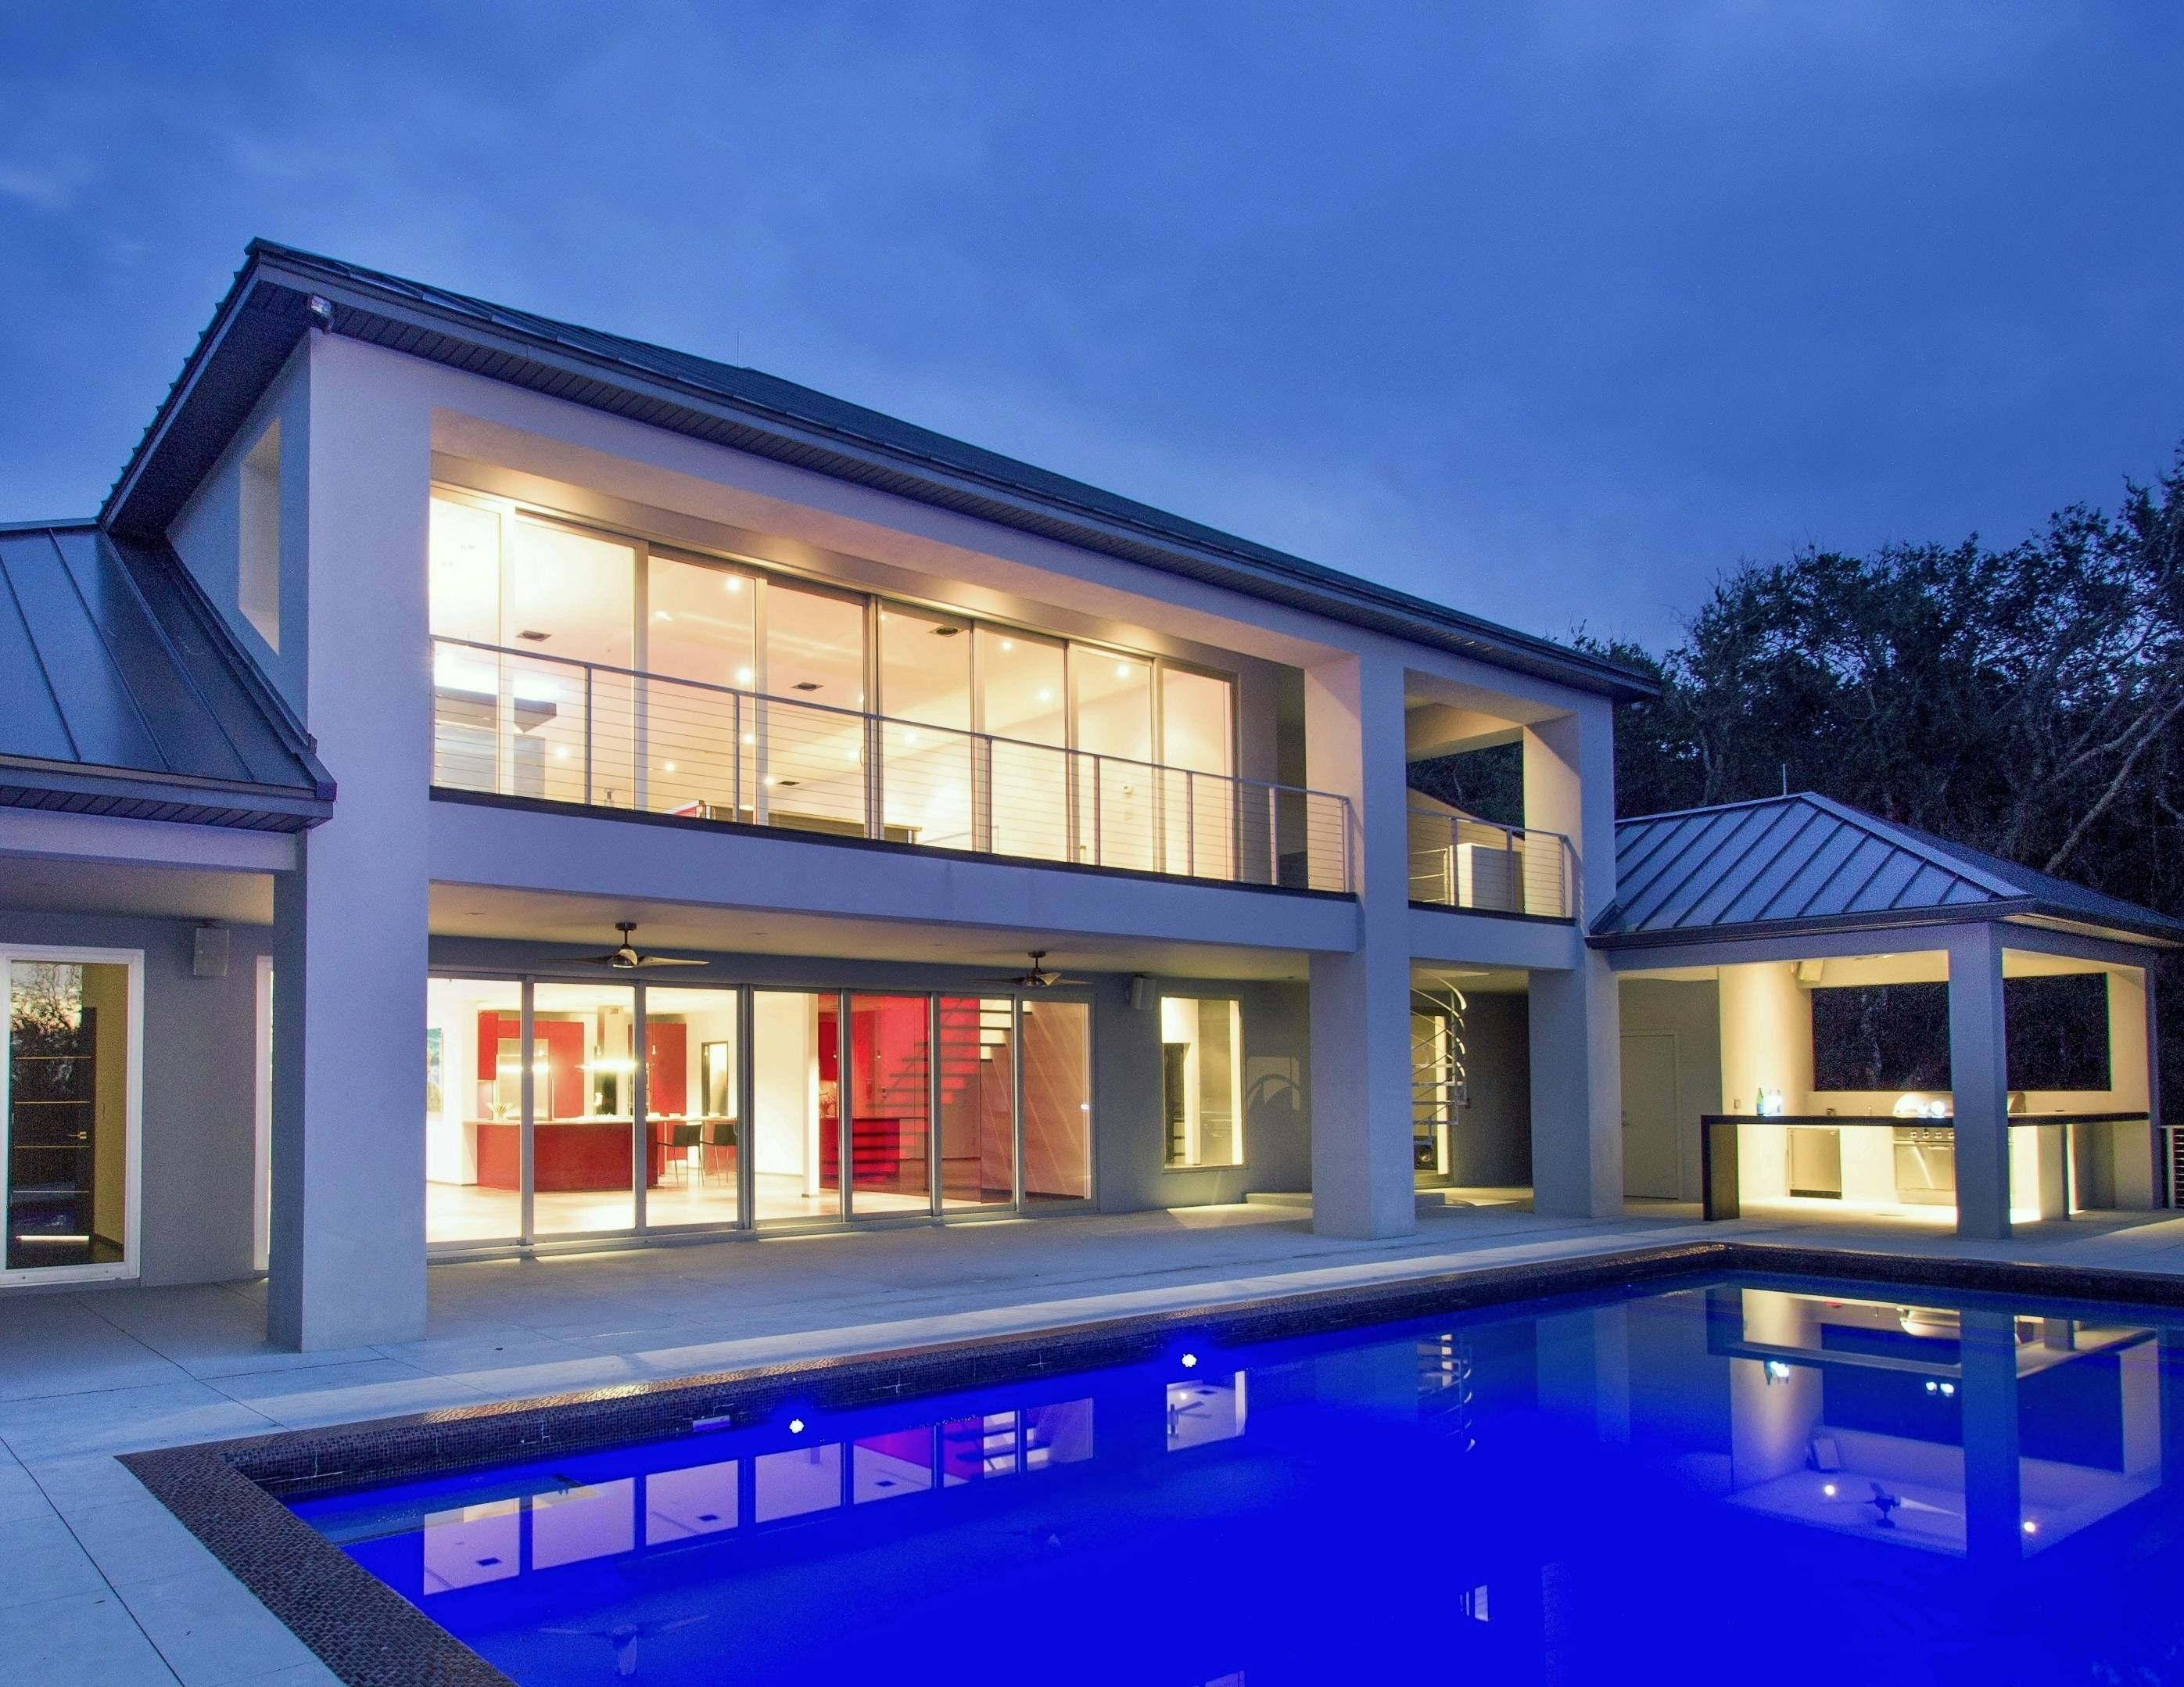 Incredible luxury modern central florida home for sale for Designer homes of central florida